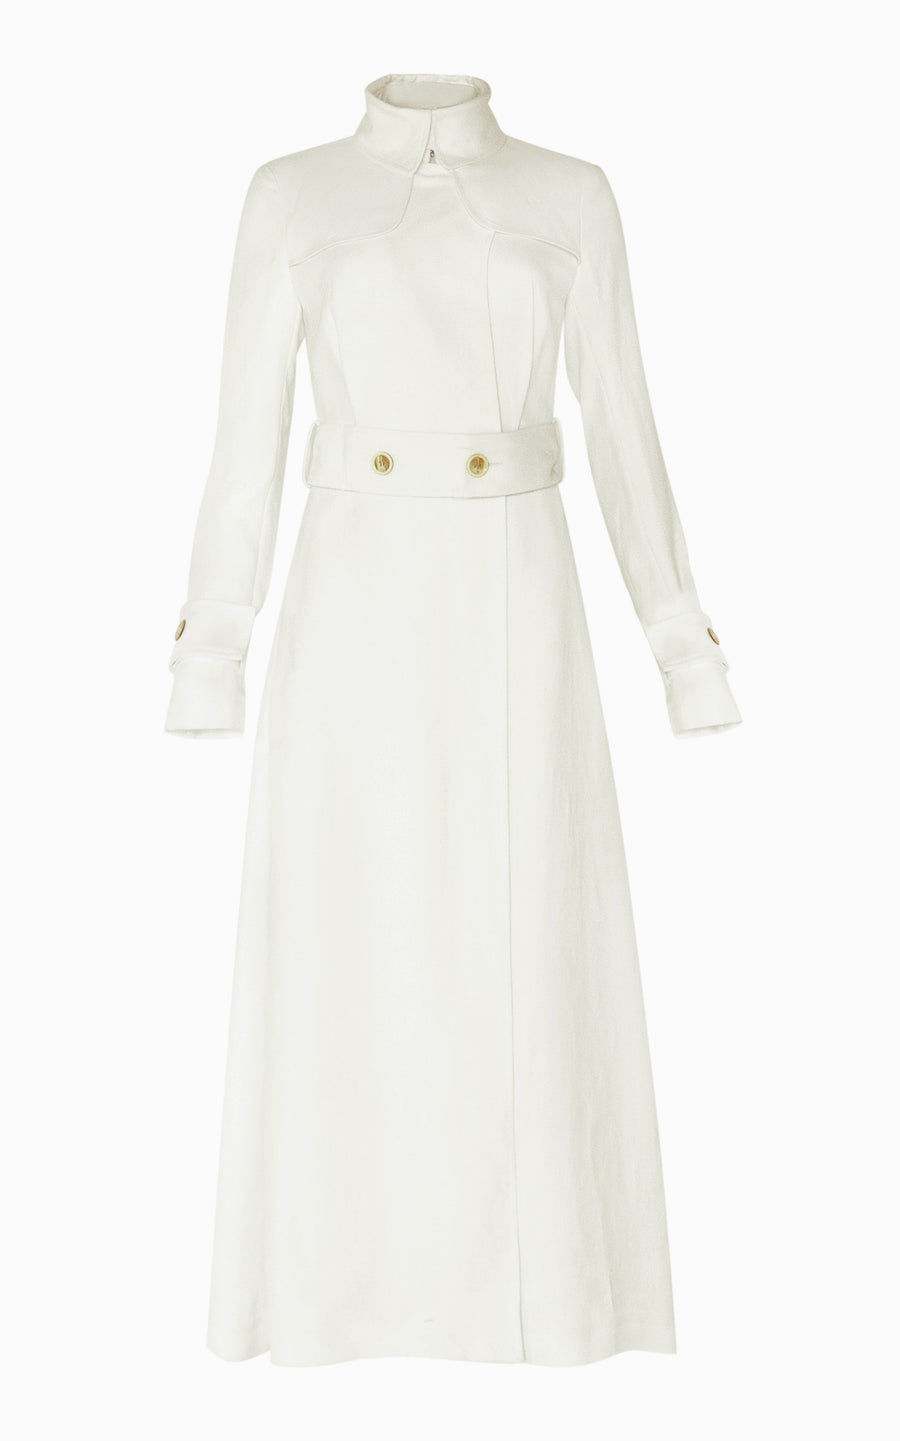 Preorder Marple Dress Coat | Ivory